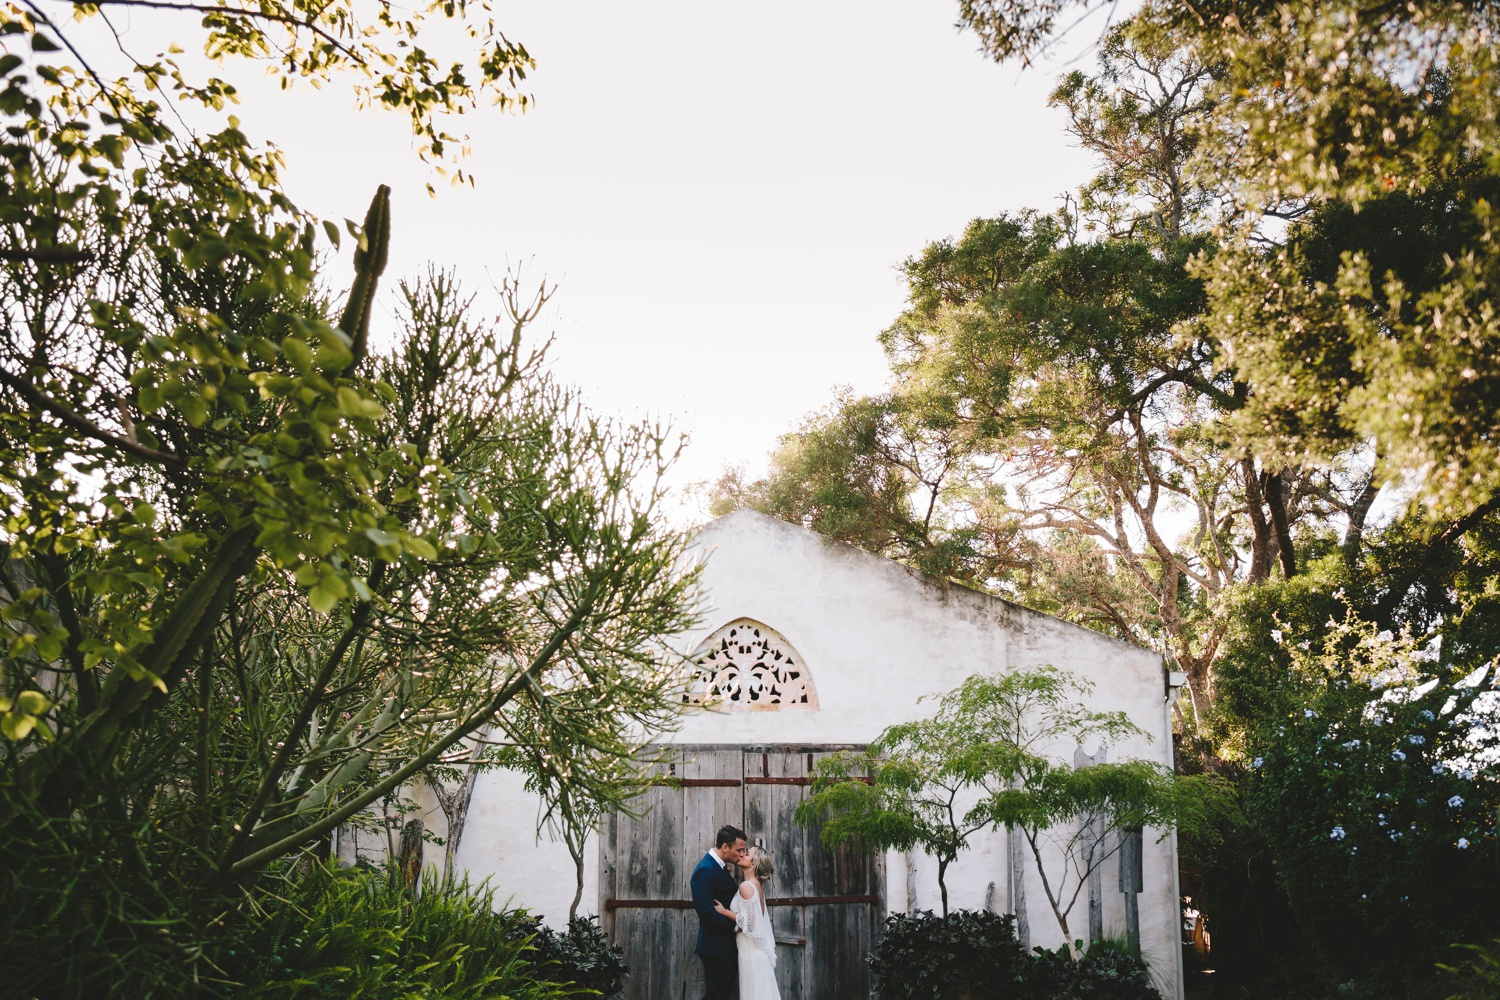 charlie_ray_photography_runaway_romance_elopement_emily_moon_plett_simple_boho_wedding_south_africa_bohemium_0081.jpg